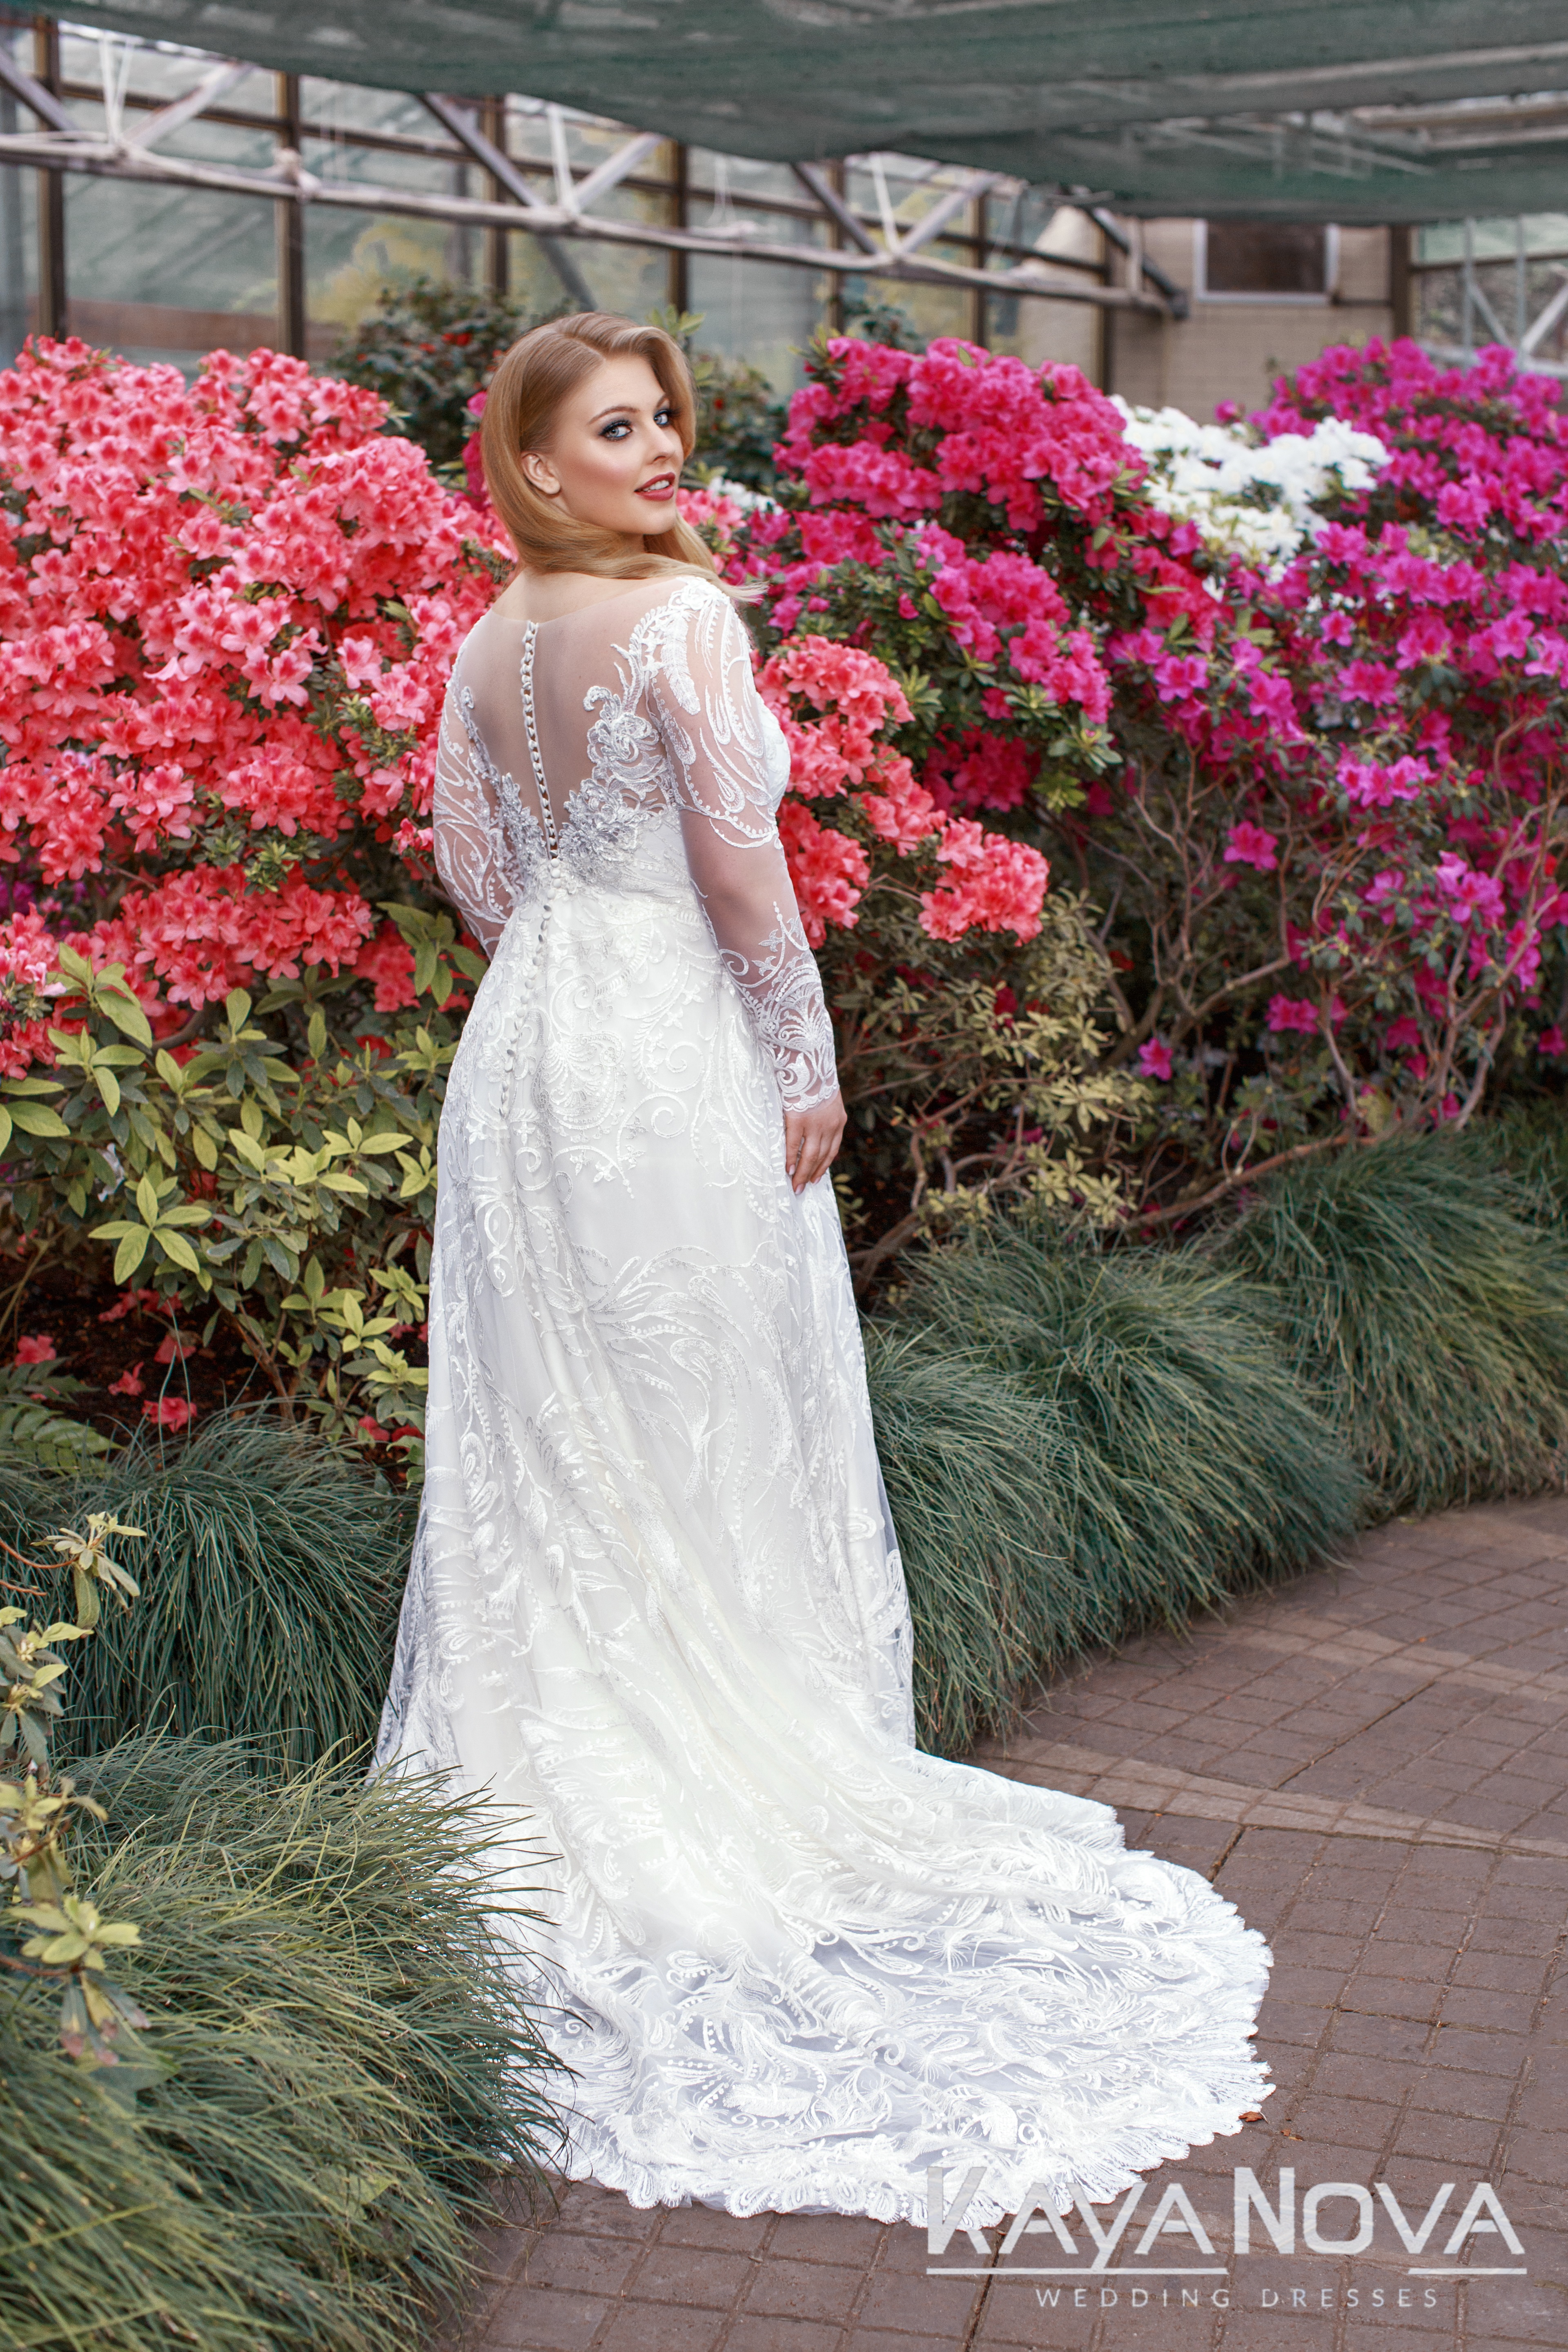 https://kayawedding.com/images/stories/virtuemart/product/768C9695 copy.jpg